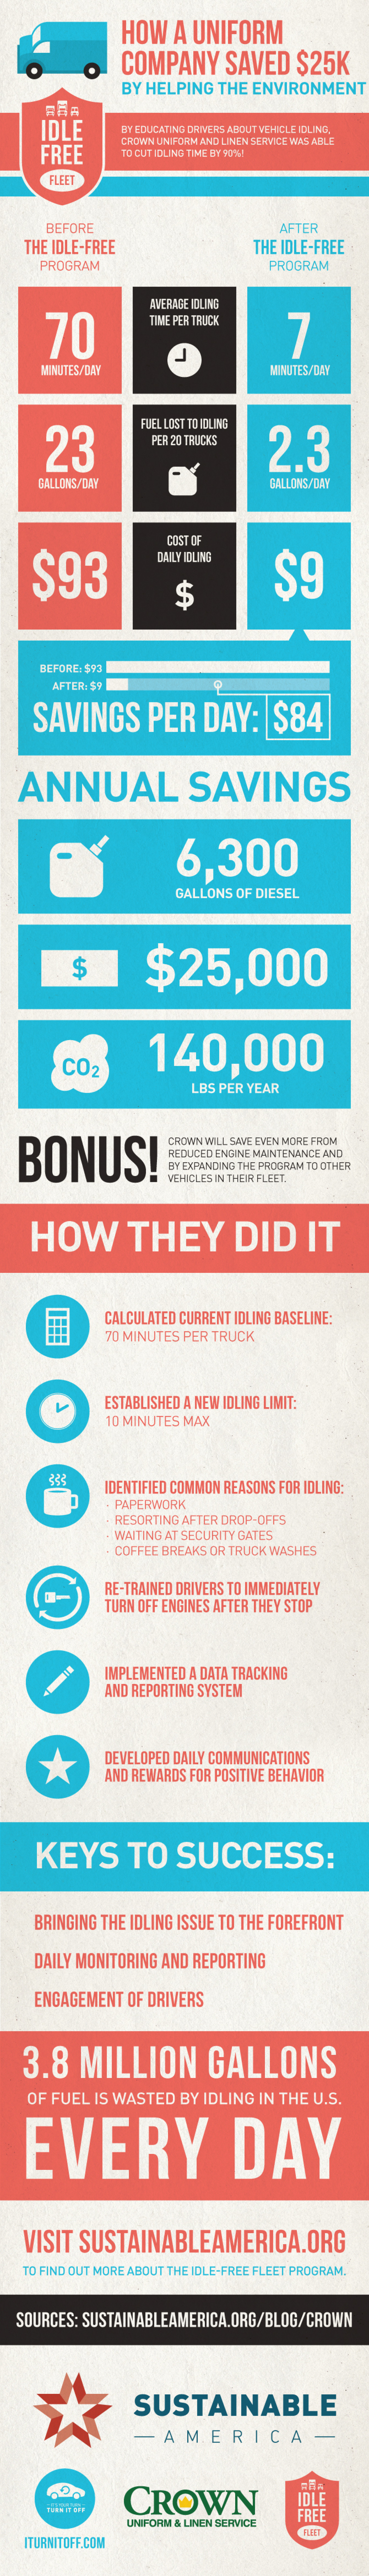 How a Uniform Company Saved $25K by Helping the Environment Infographic